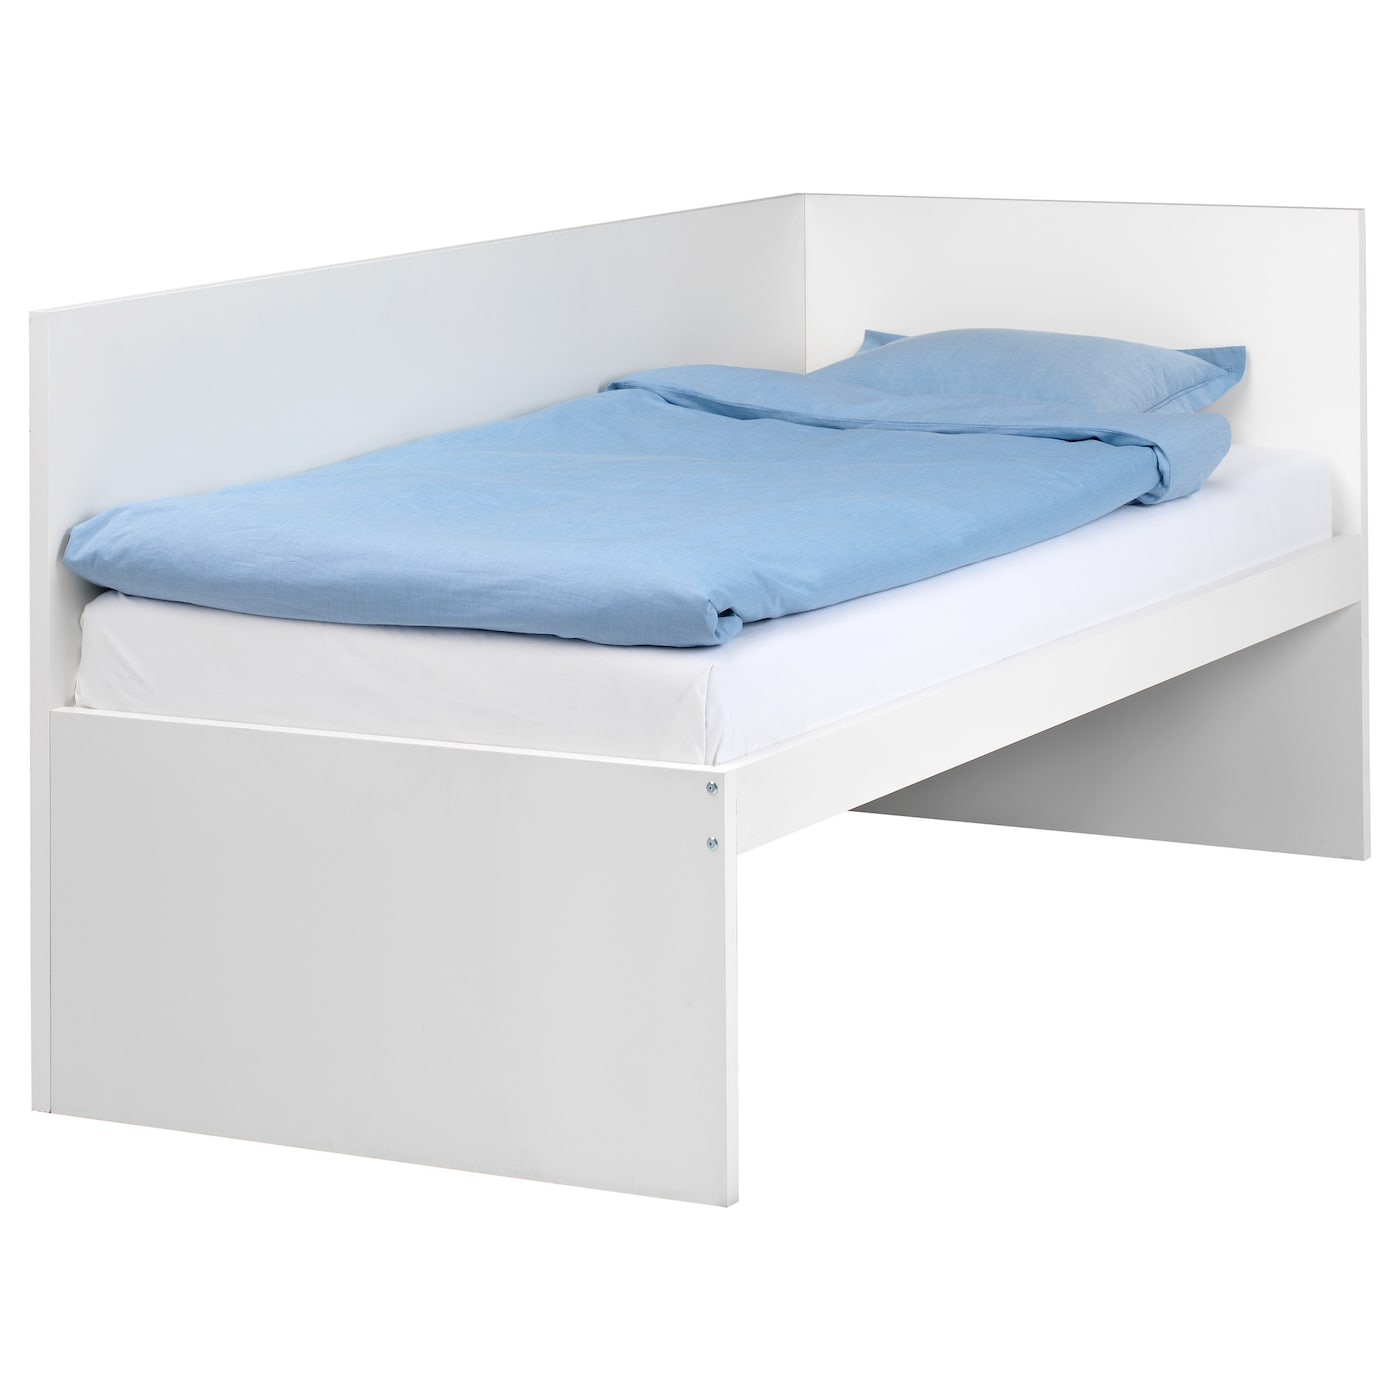 Flaxa Bed Frm W Headboard Slatted Bd Base White 90x200 Cm Ikea